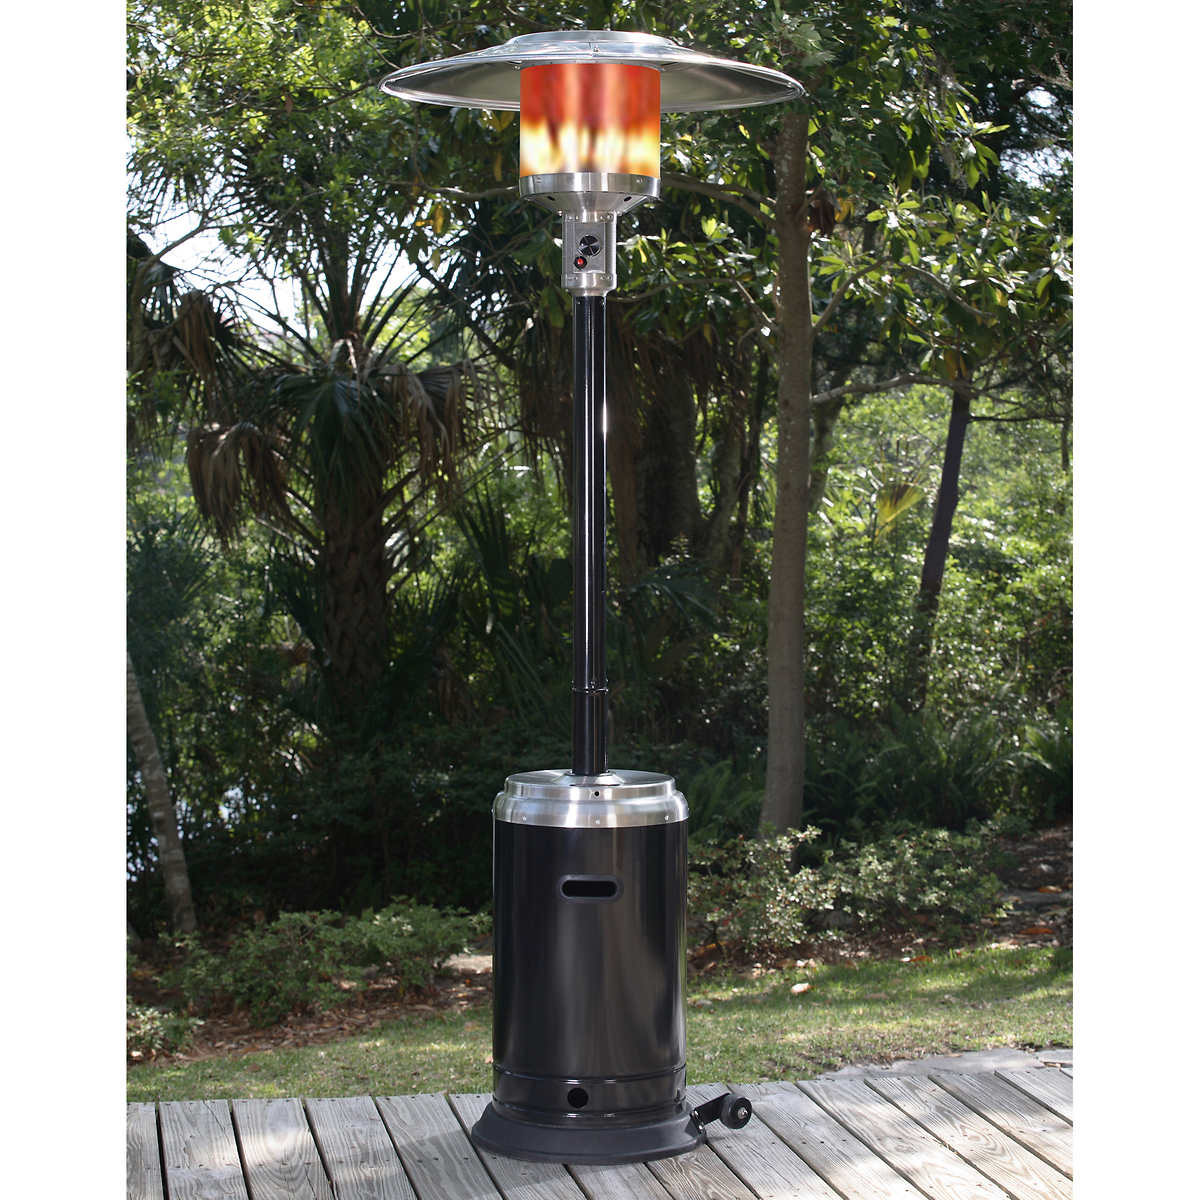 Paramount Black and Stainless Steel Full Size Propane Patio Heater - Patio Heaters & Fire Columns Costco